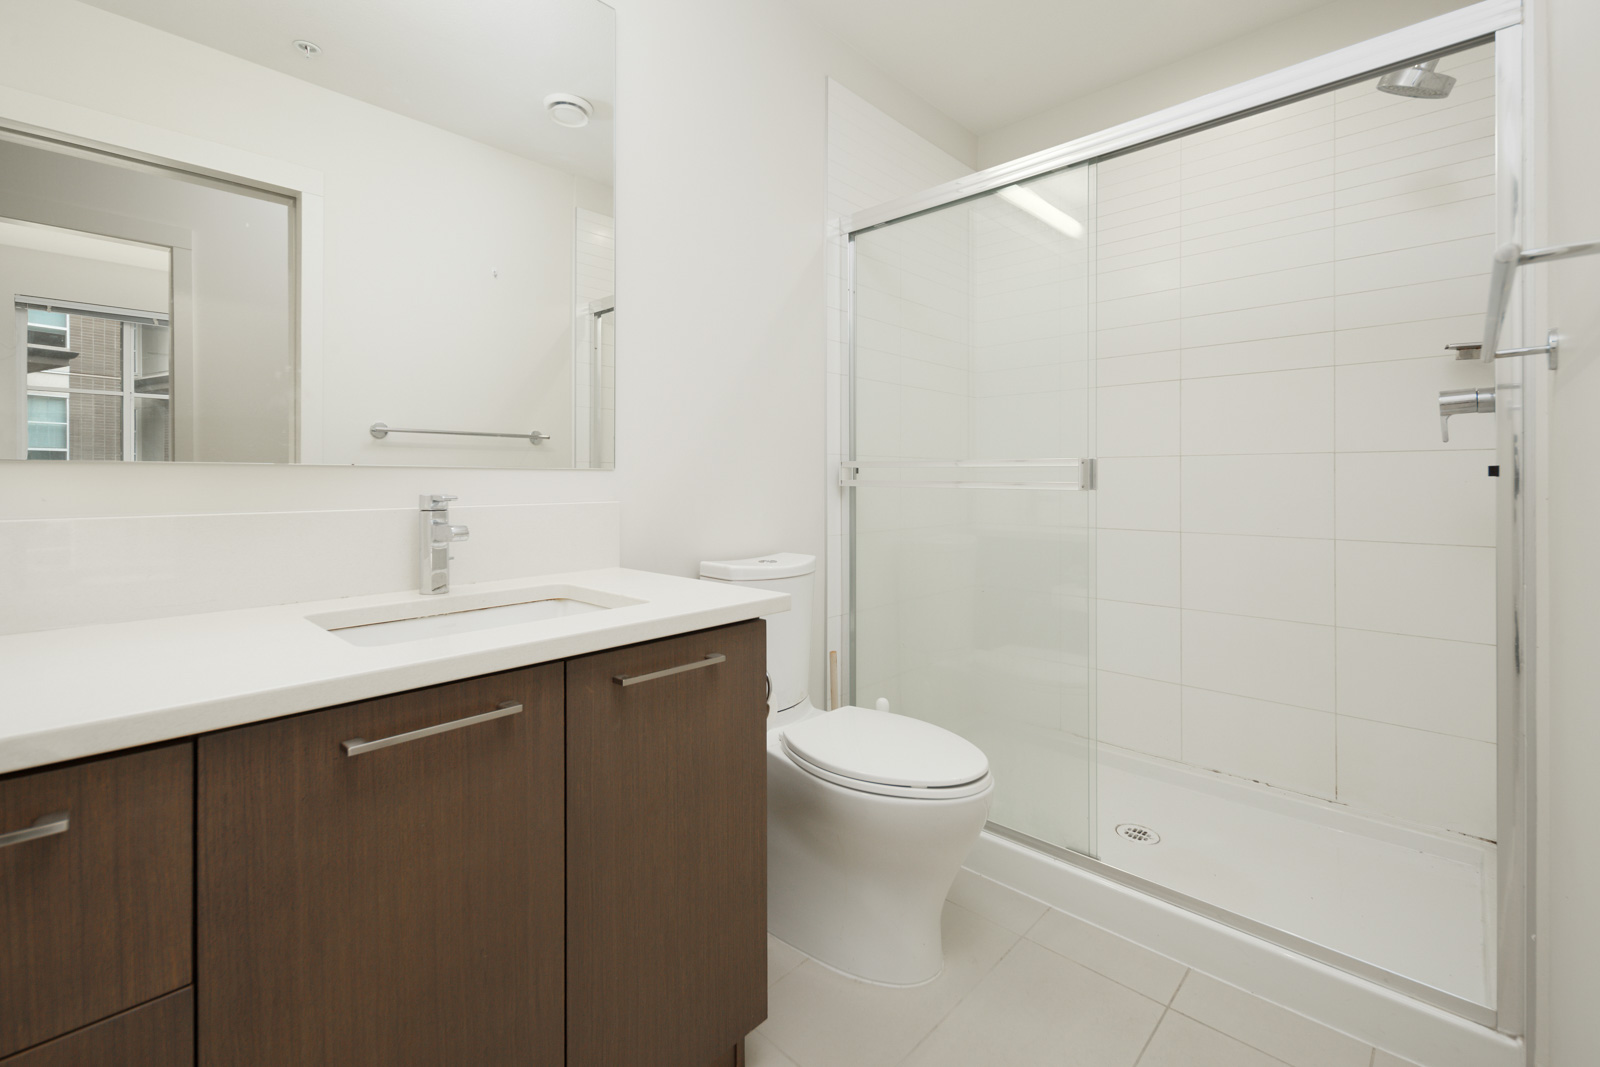 bathroom with mirror and standing shower